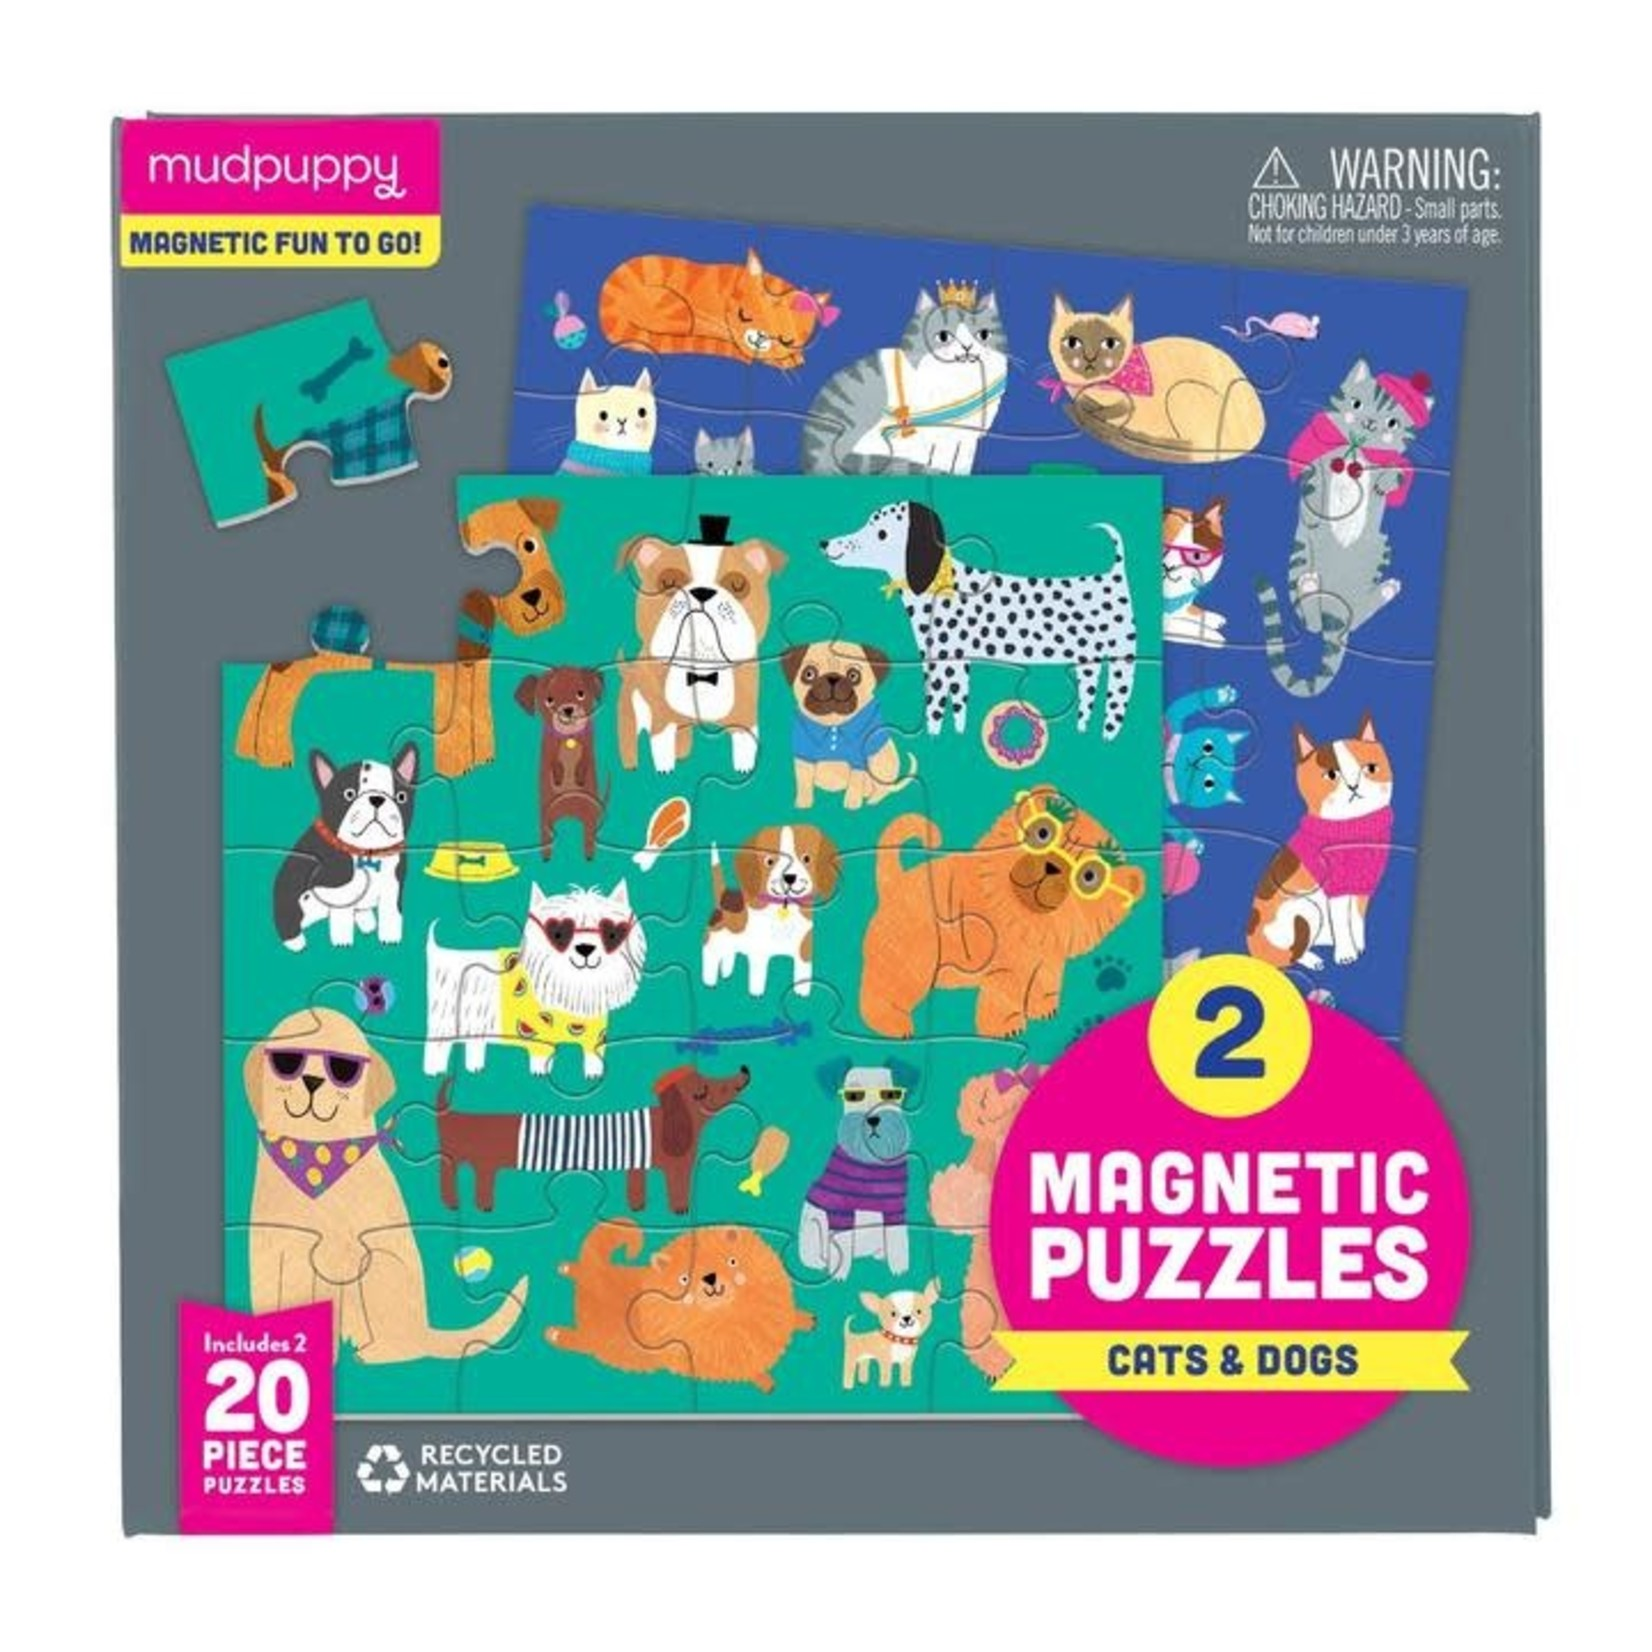 Mudpuppy Cats & Dogs Magnetic Puzzles 2x 20 - Piece jigsaw puzzles